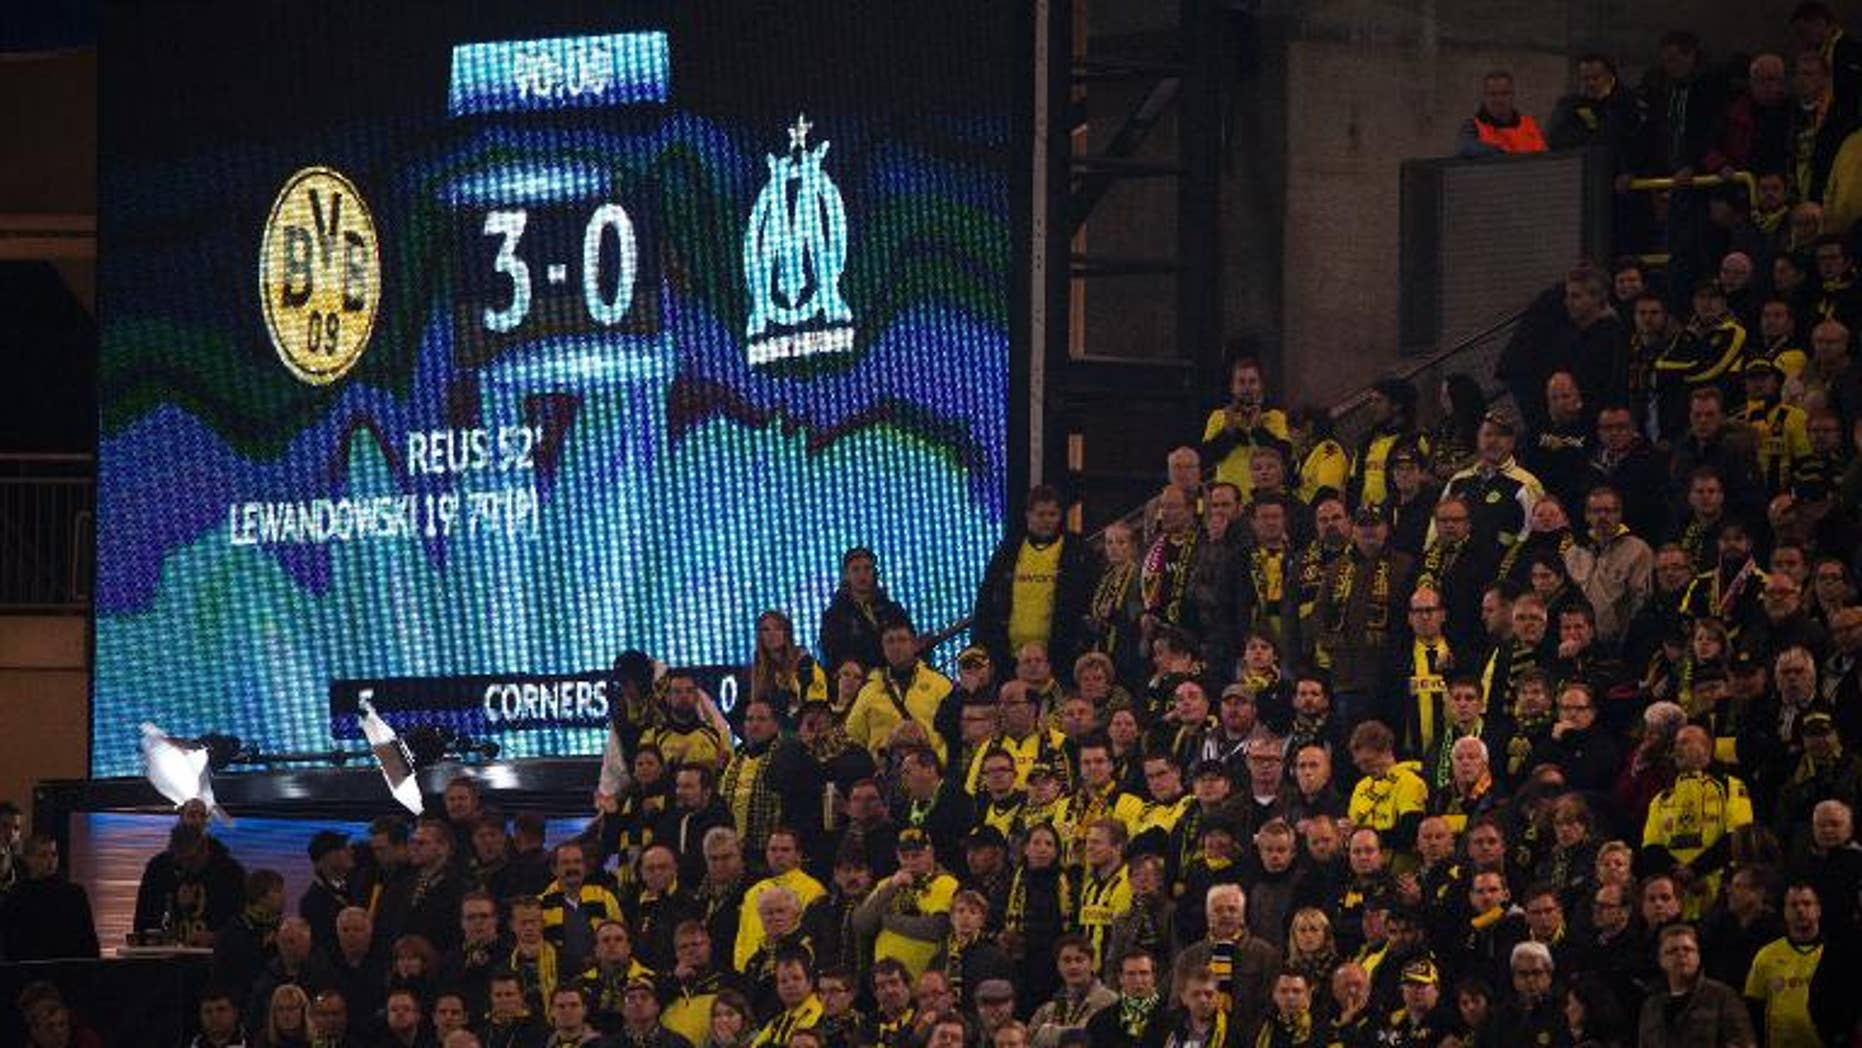 An electronic billboard shows the final score after the UEFA Champions League Group F football match Borussia Dortmund vs Olympique Marseille in Dortmund, western Germany on October 1, 2013